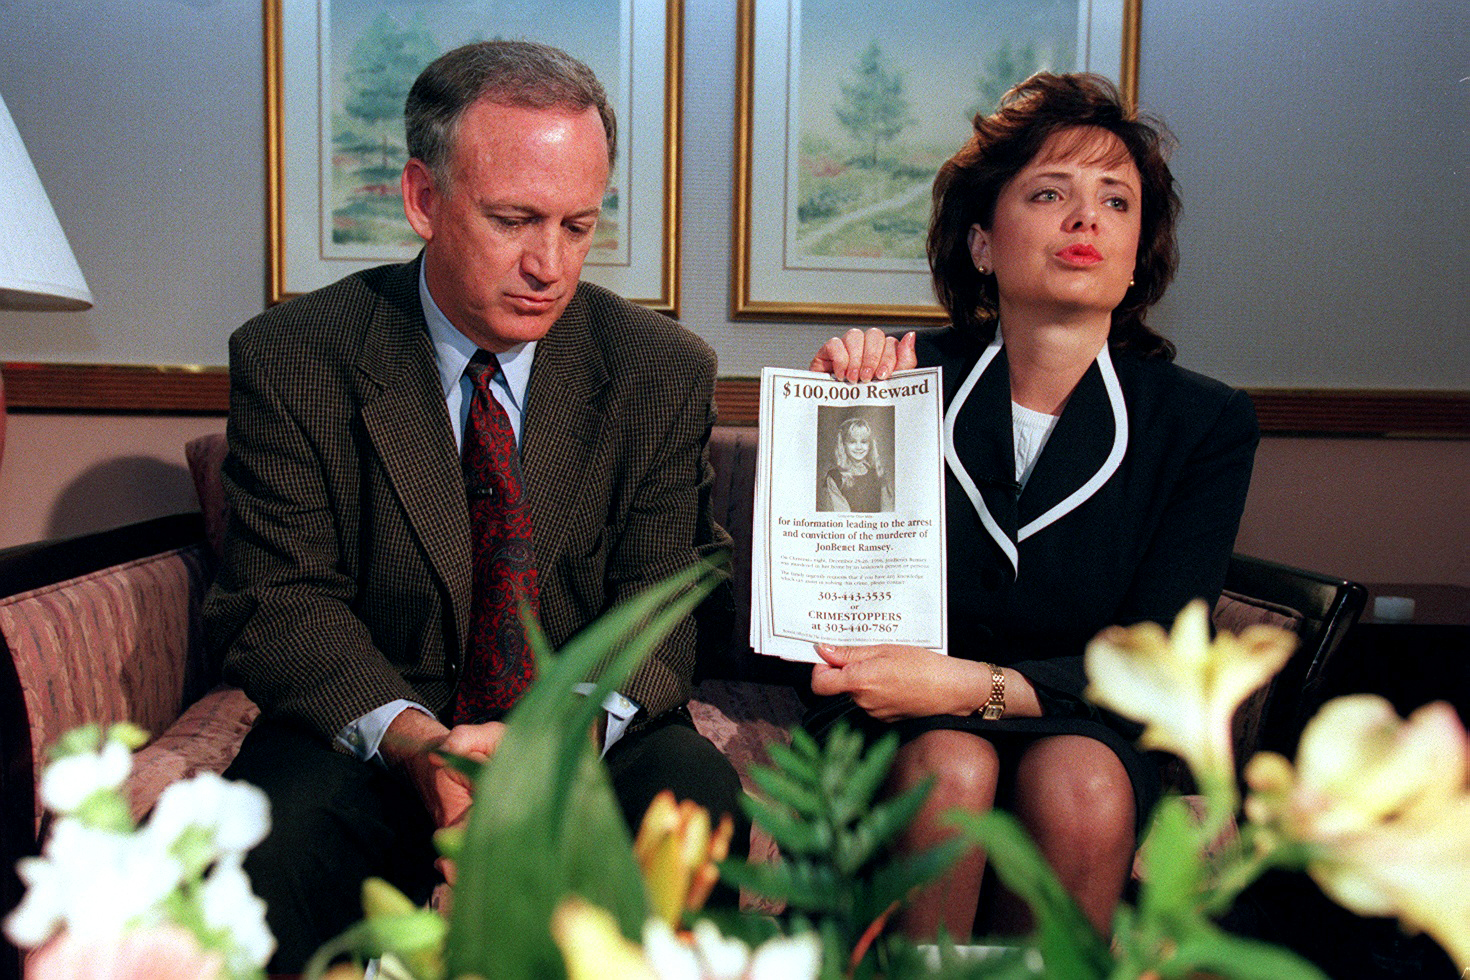 John and Patsy Ramsey meet with media after four months of silence, in Boulder, CO, on May 1, 1997.